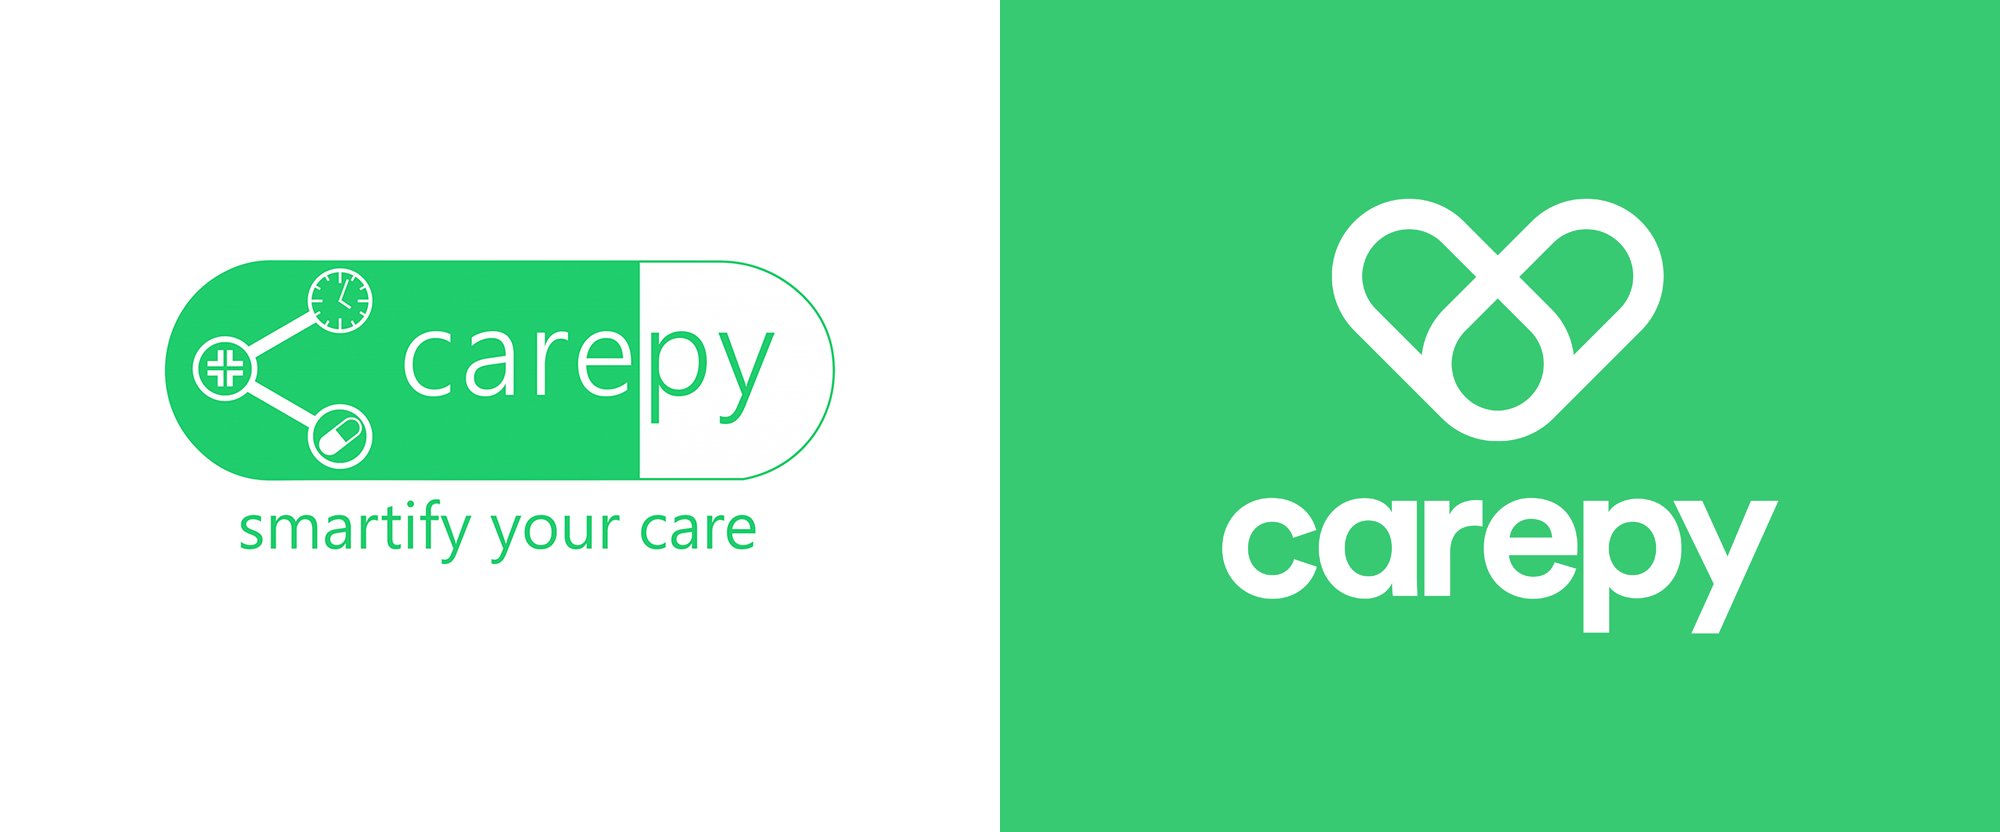 New Logo and Identity for Carepy by Superklas